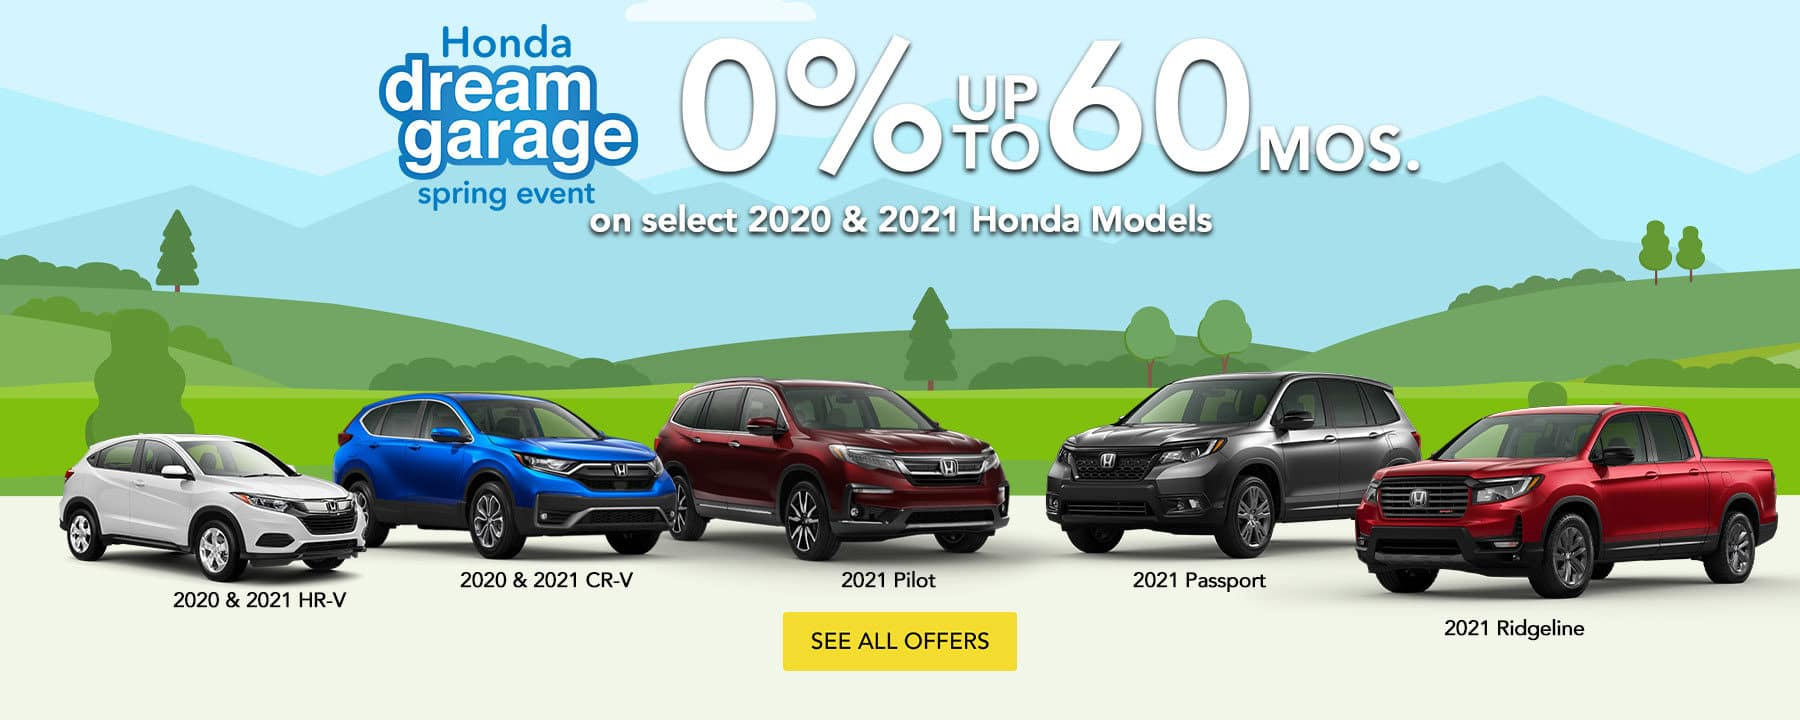 0% APR on select 2020 and 2021 new Honda models. Click to see all offers.